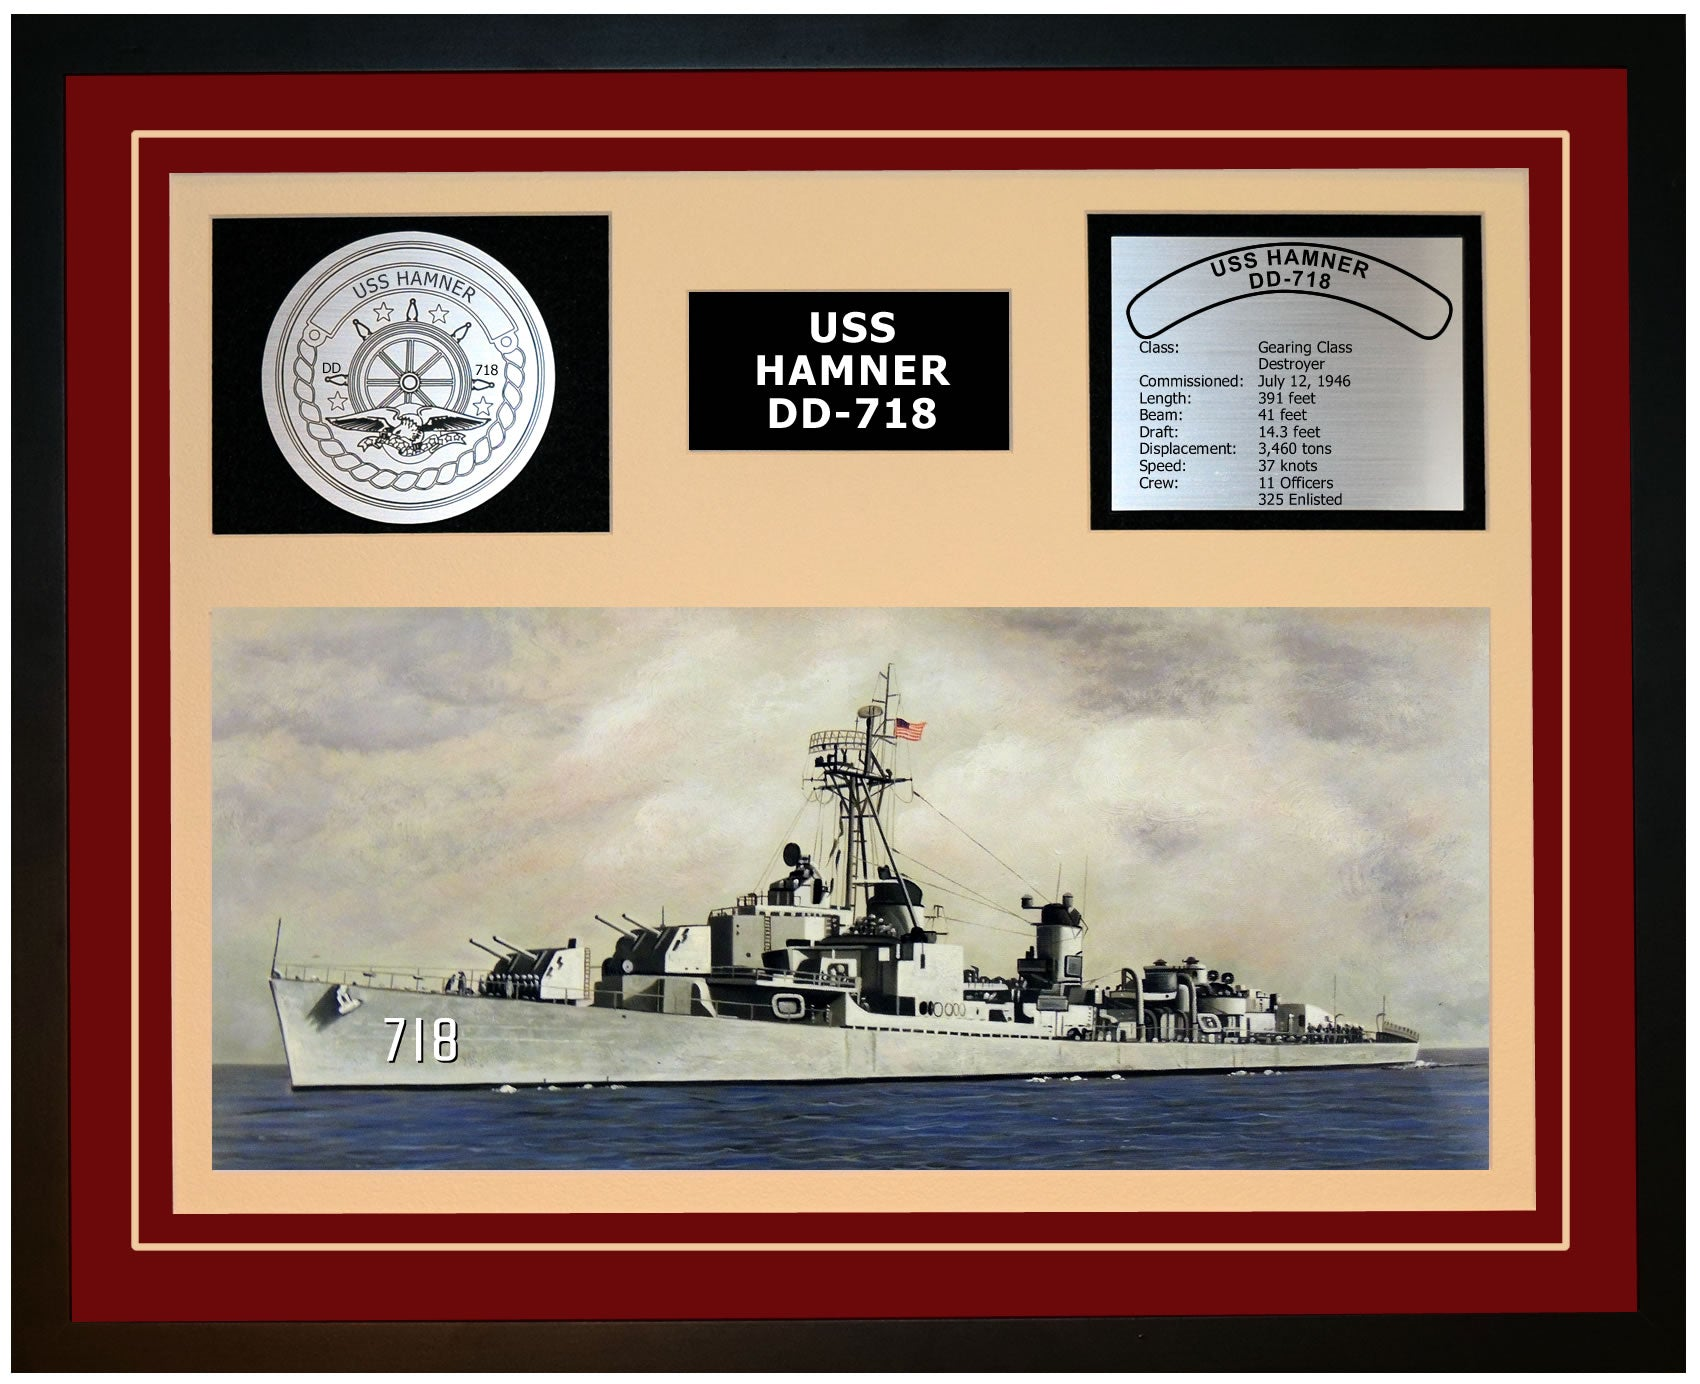 USS HAMNER DD-718 Framed Navy Ship Display Burgundy